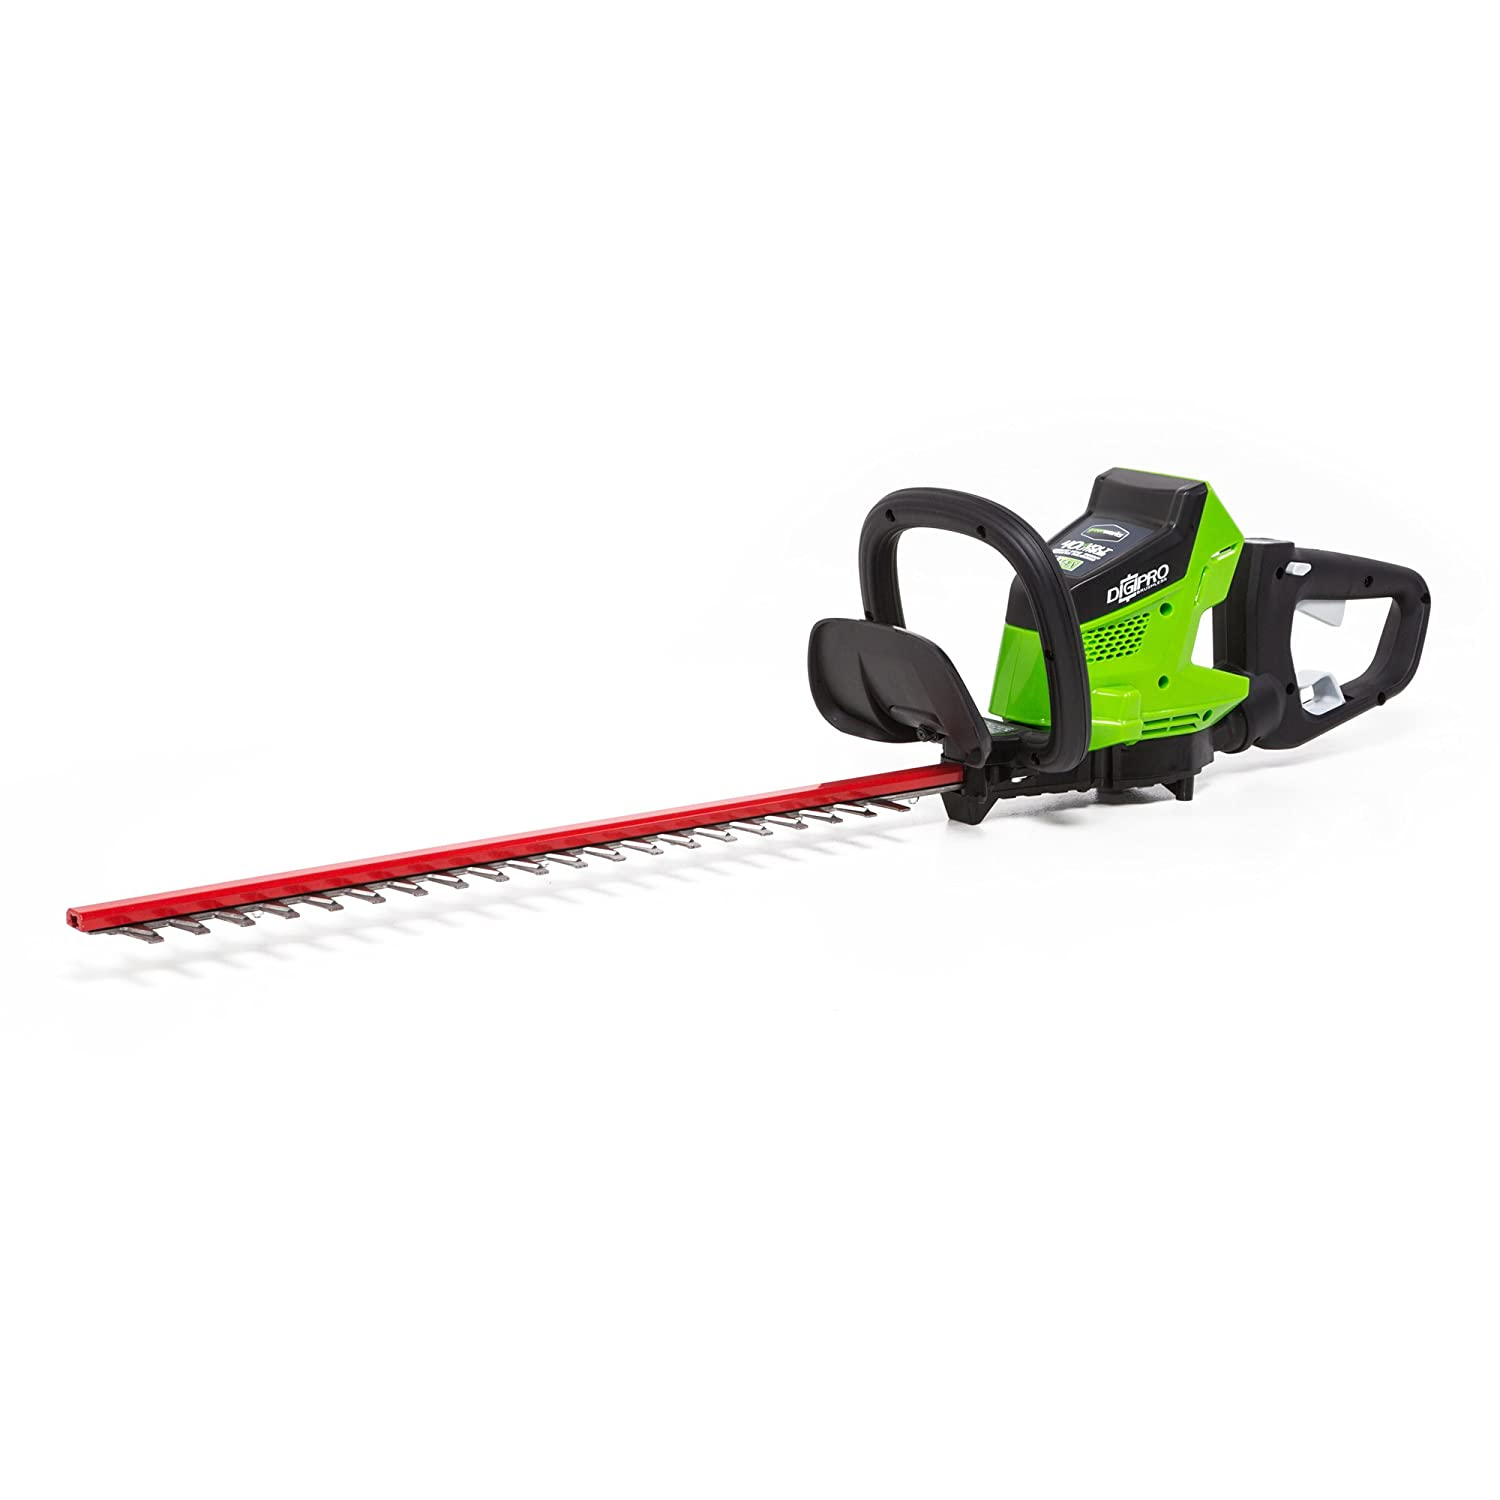 Greenworks HT40L00 Brushless Cordless Hedge Trimmer, 24 Battery Not Included, Black Green